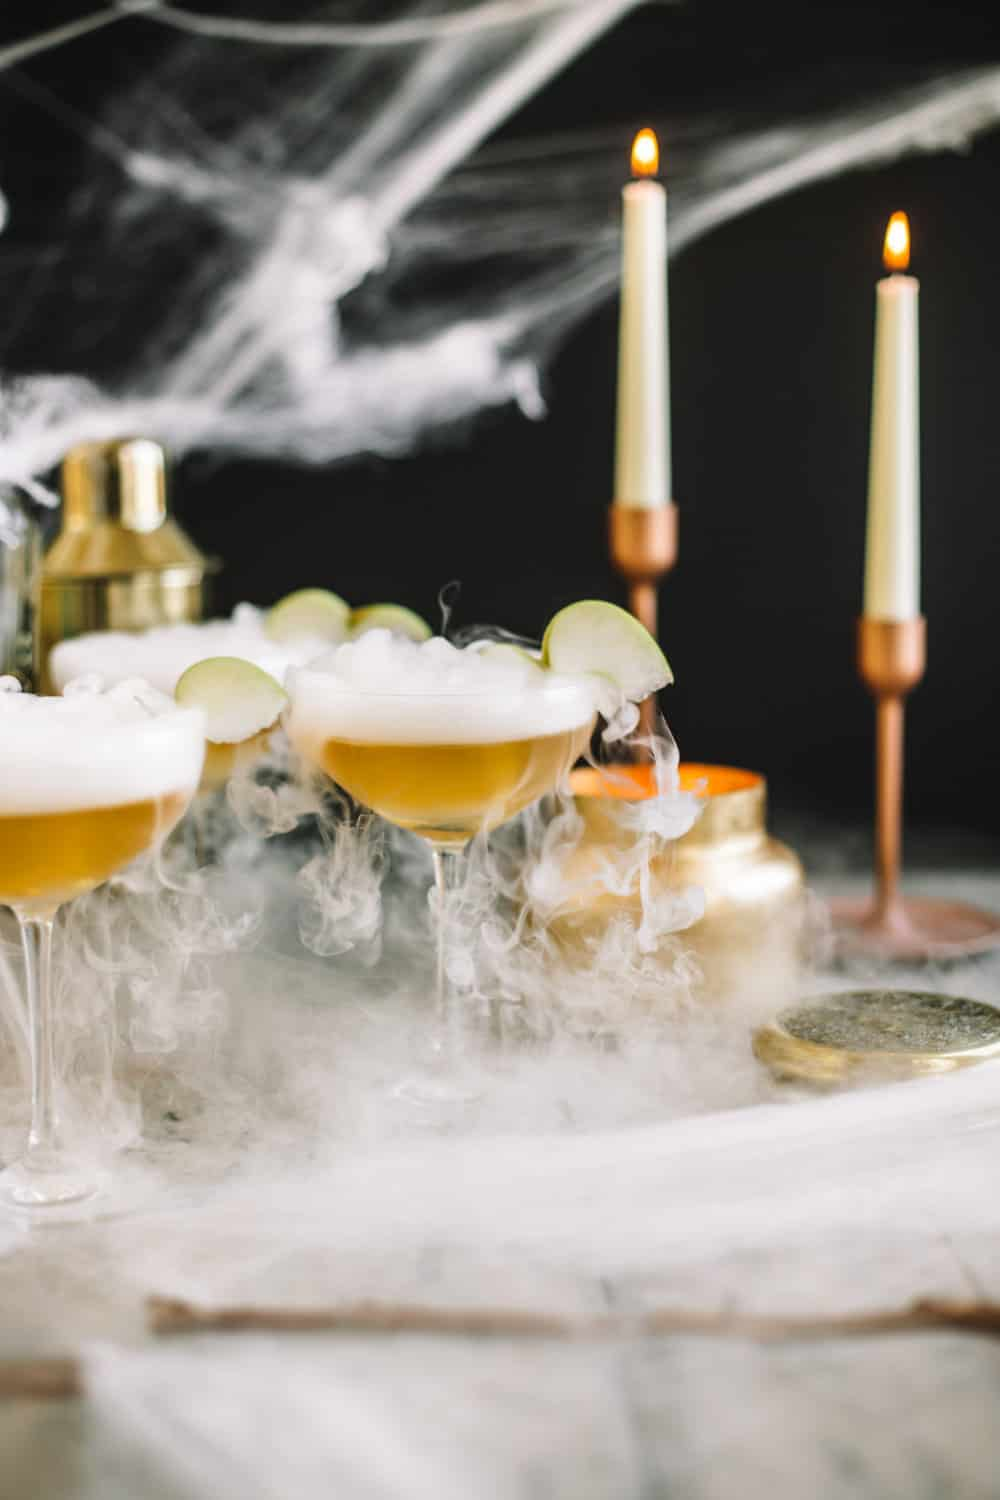 Elderflower wand martini with dry ice ,spider webs, and candle sticks.